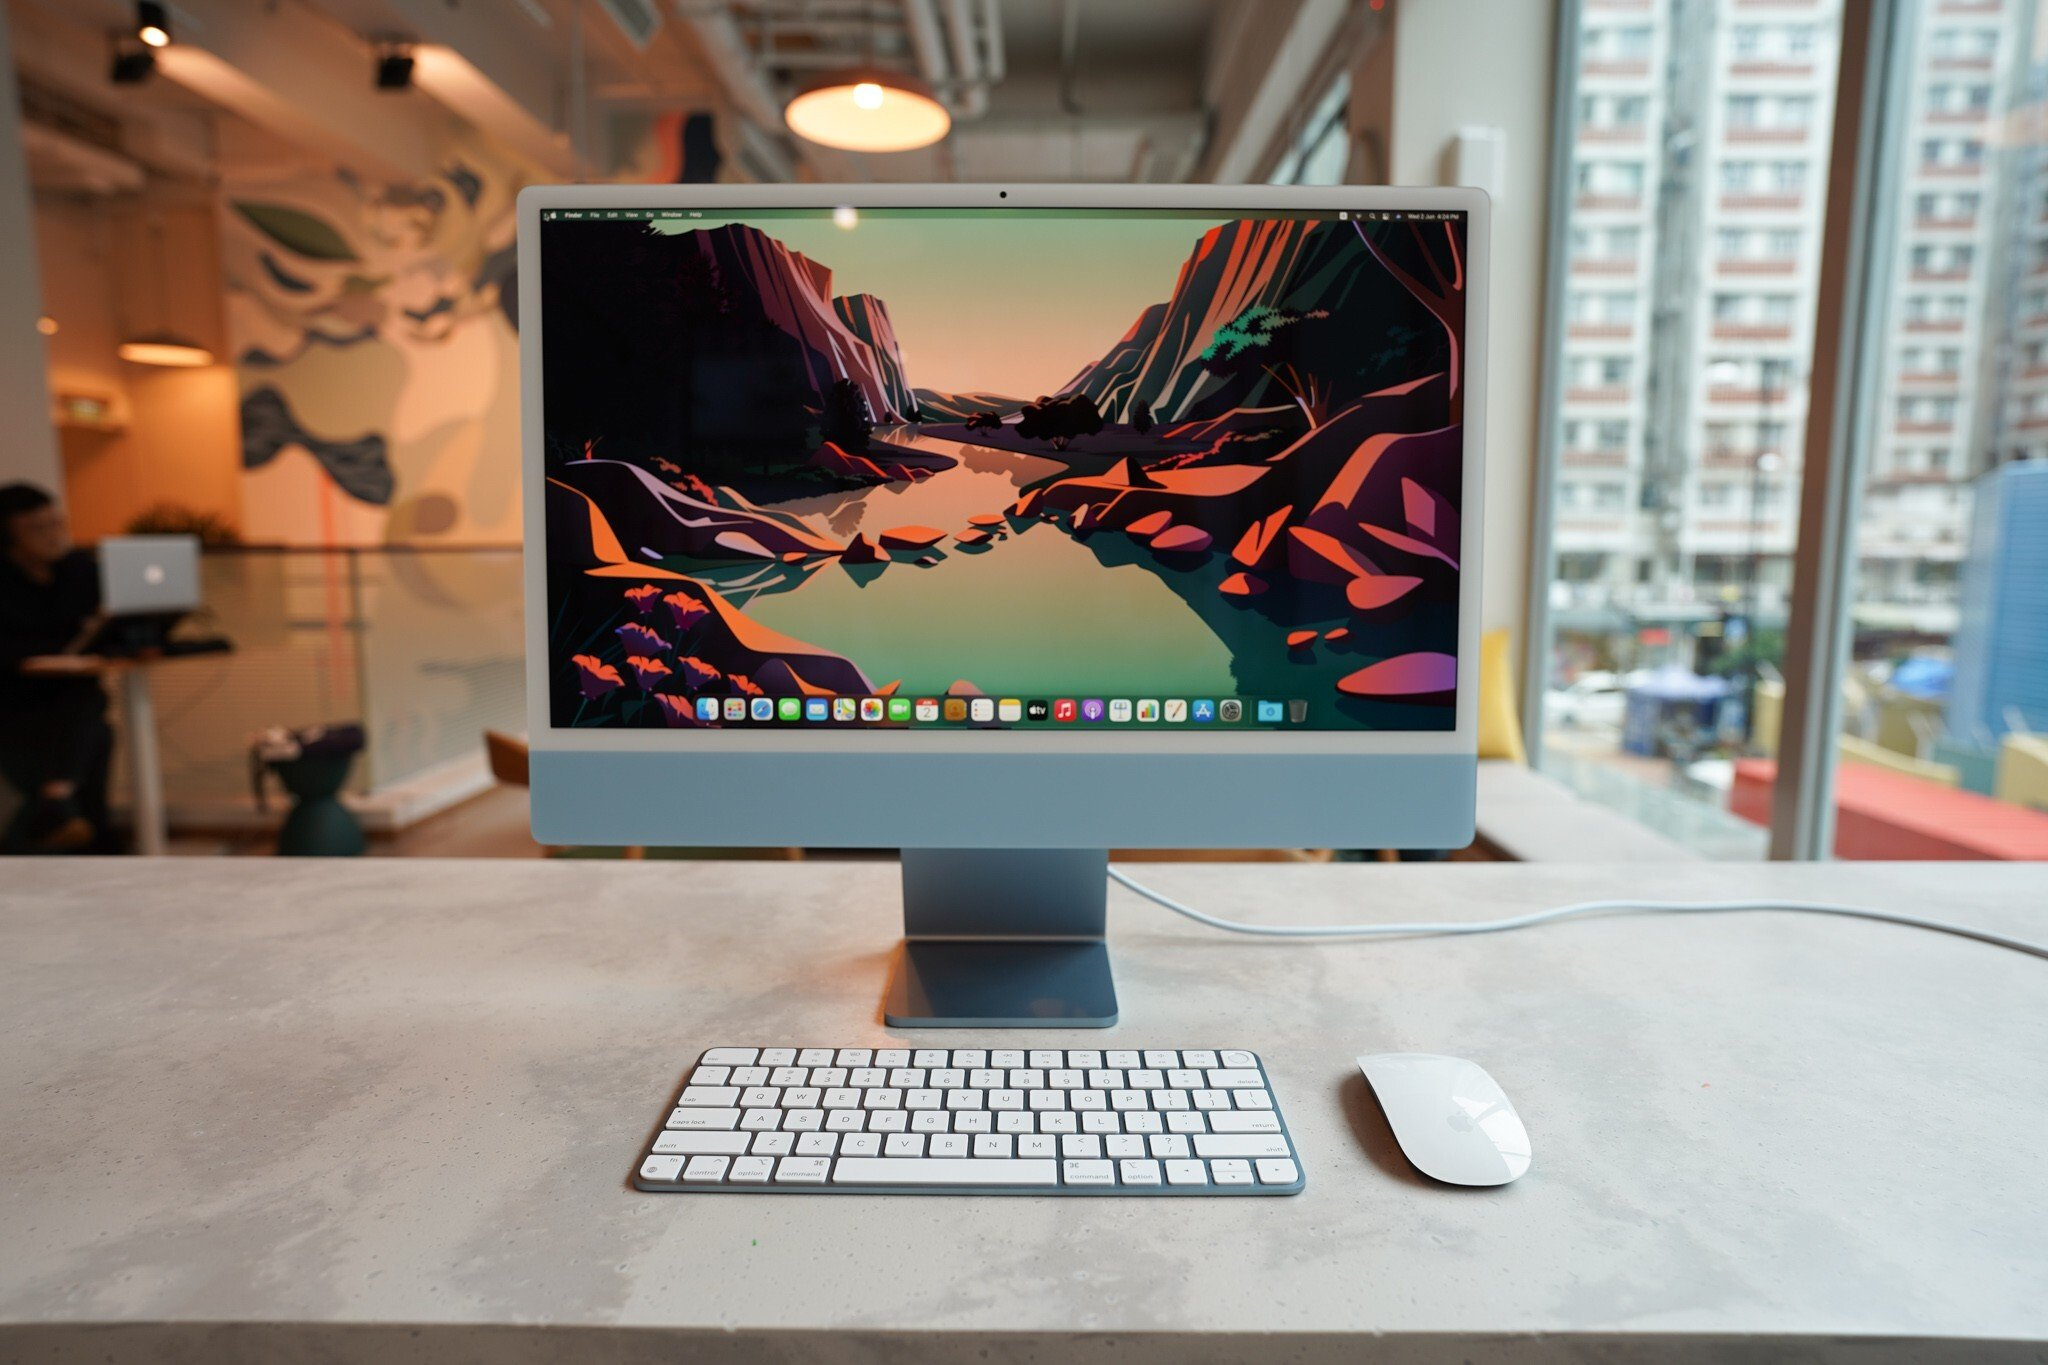 Review of New iMac M1 2021 3